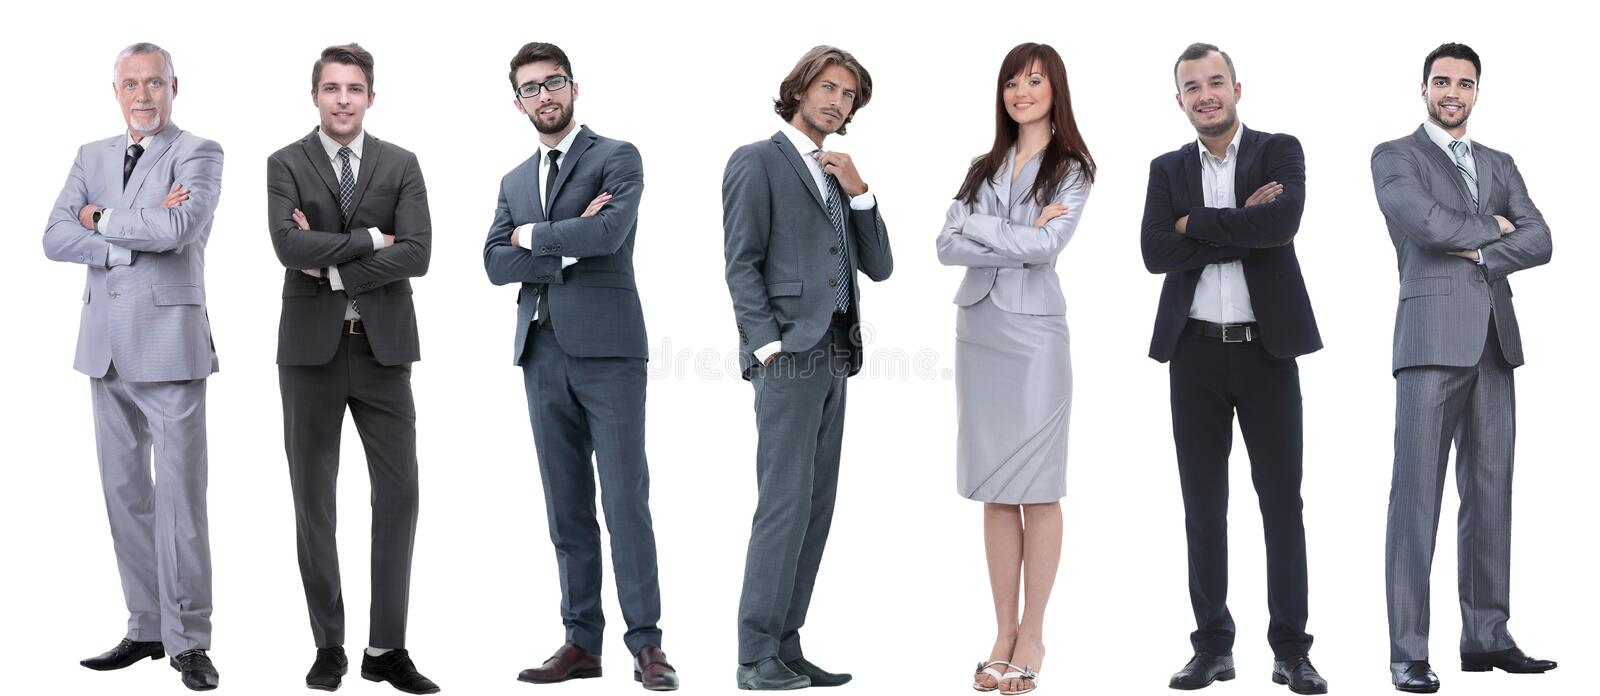 Group of successful business people standing in a row. stock photos